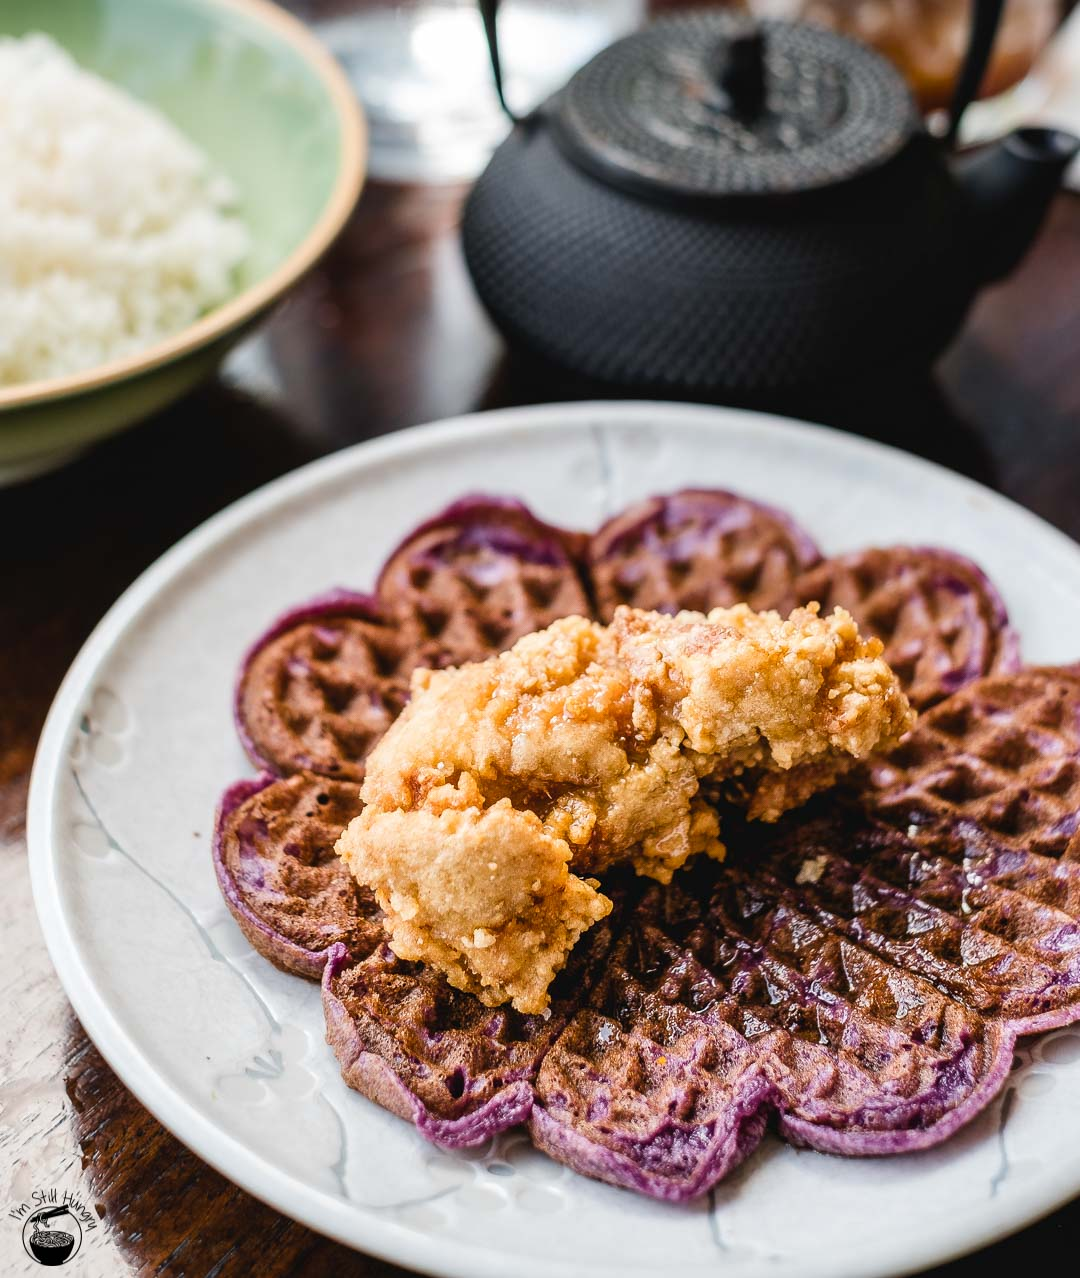 ACME Sam's fried chicken, ube waffle, maple syrup